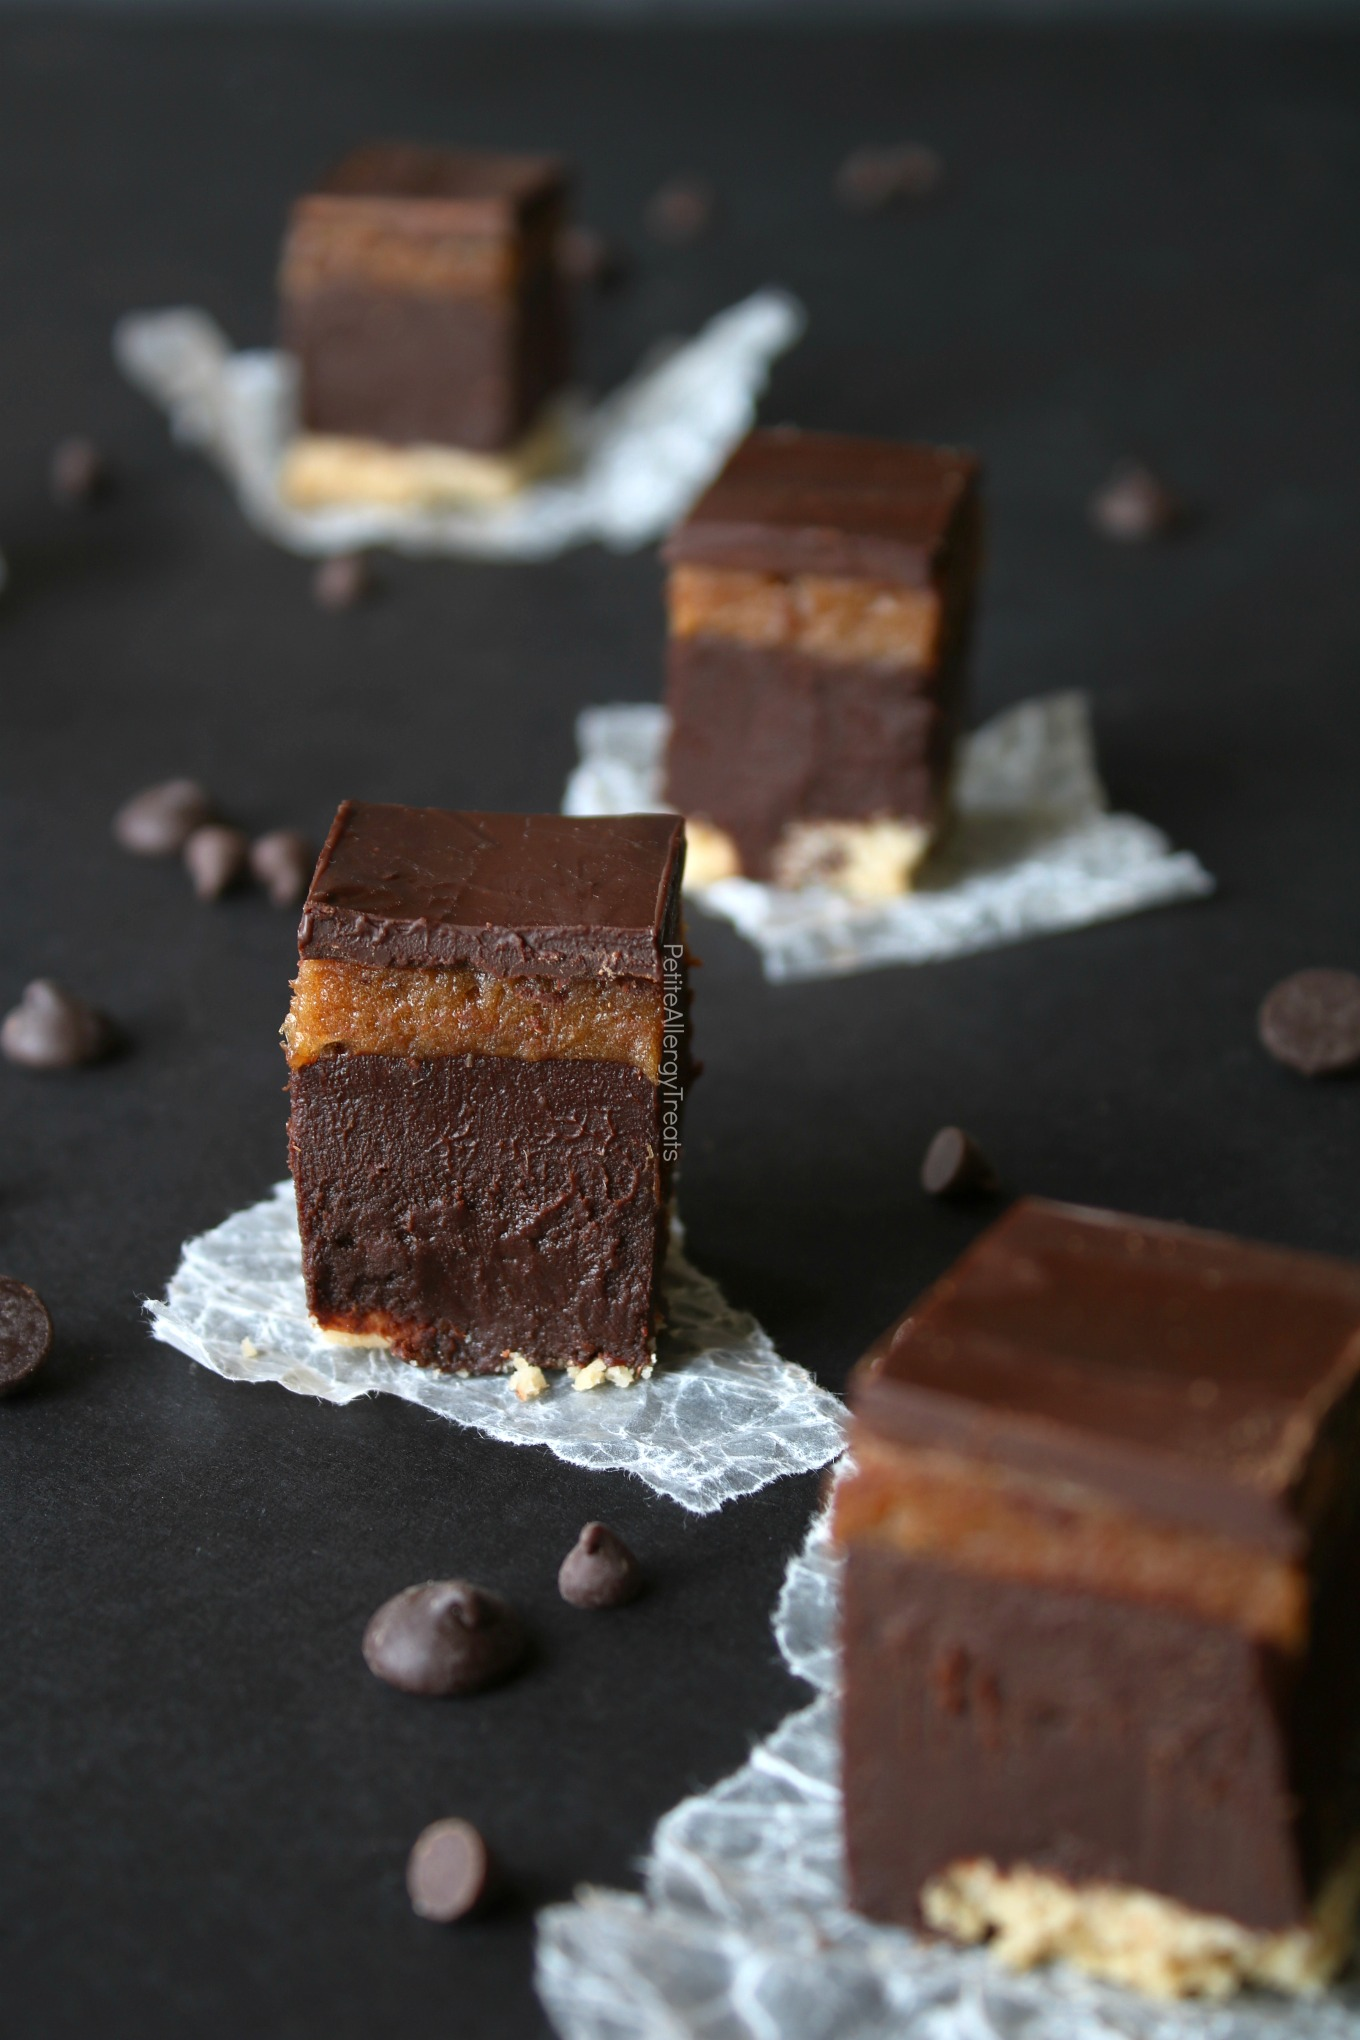 Gluten Free Twix Fudge Bars Recipe (Vegan dairy free)- No bake healthier date caramel and oil free ganache fudge filling. Food Allergy friendly!